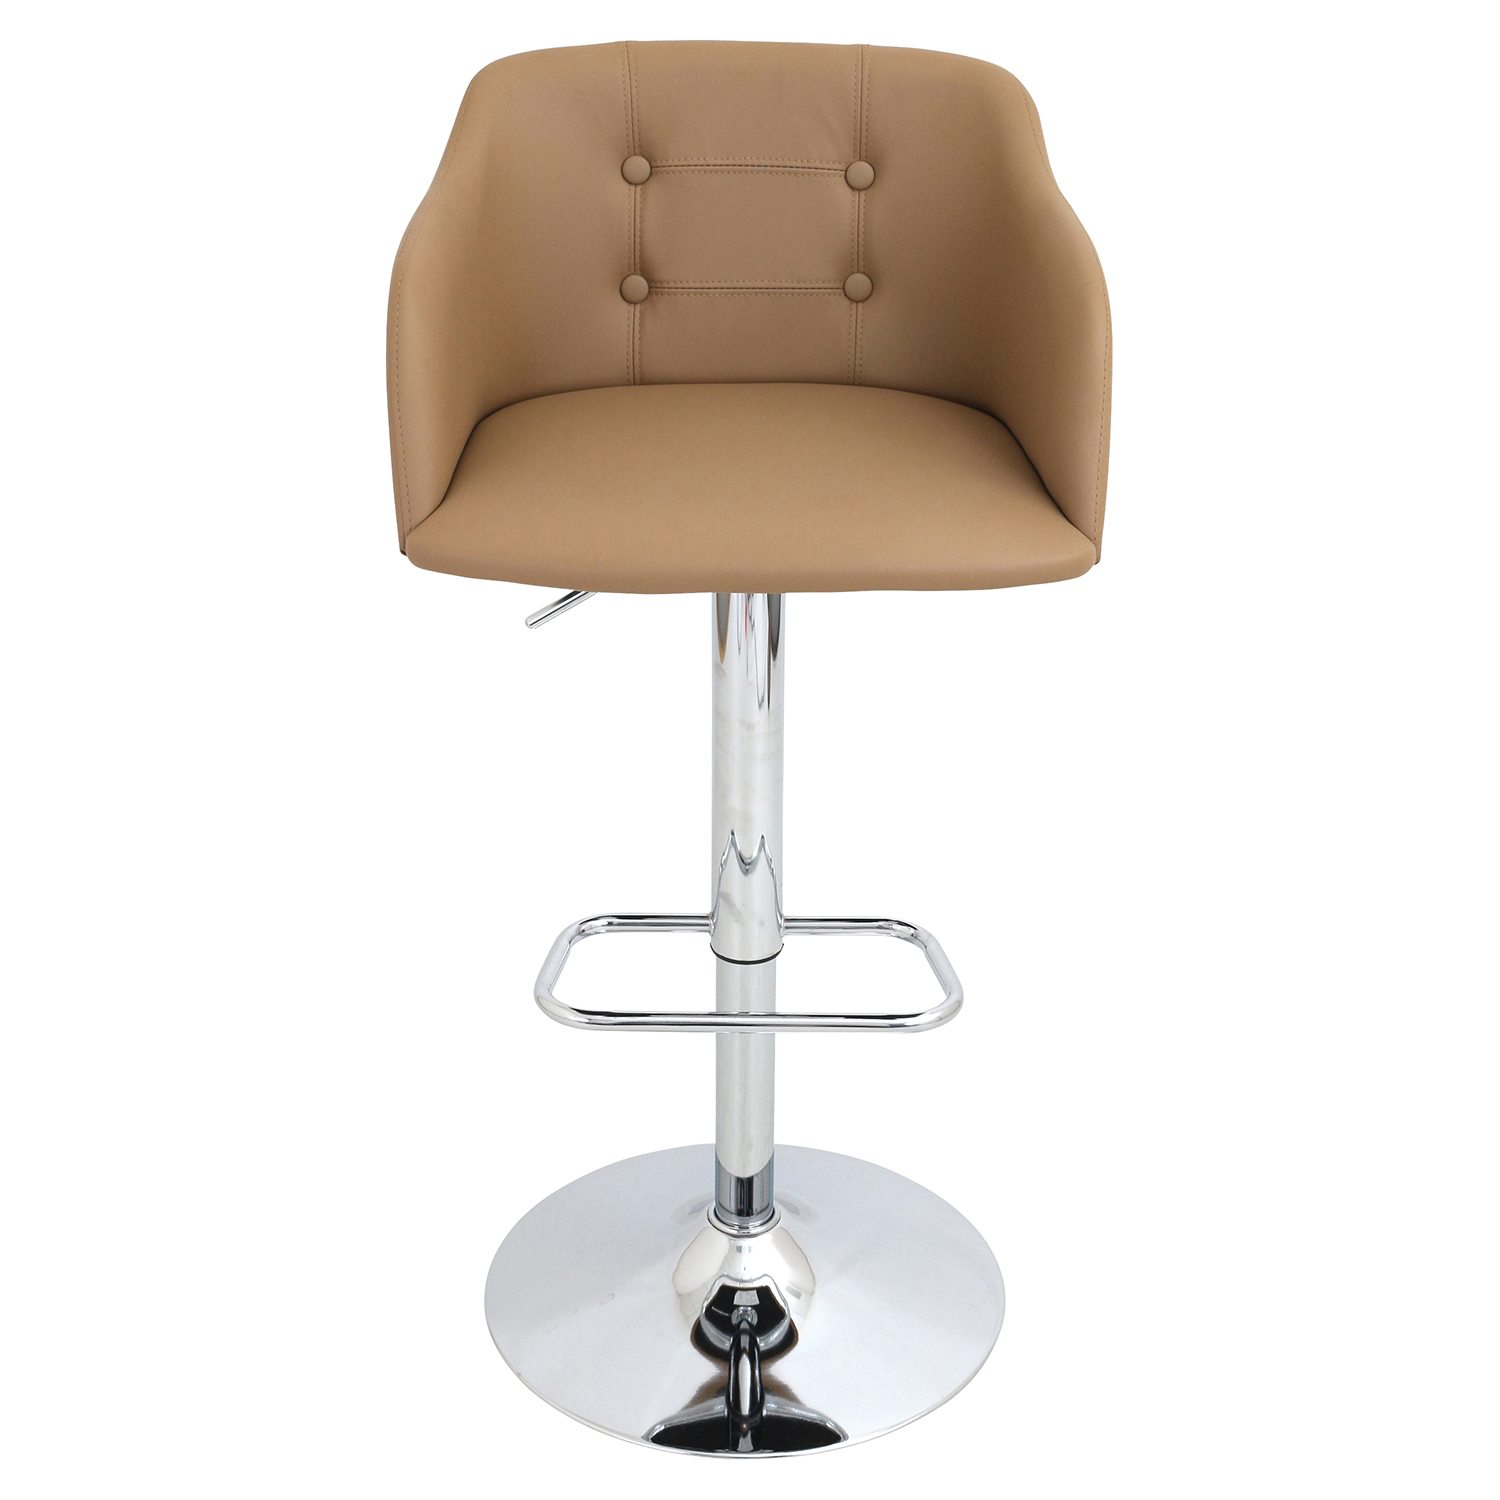 Campania Height Adjustable Barstool - Swivel, Camel - LMS-BS-JY-CMP-CAM